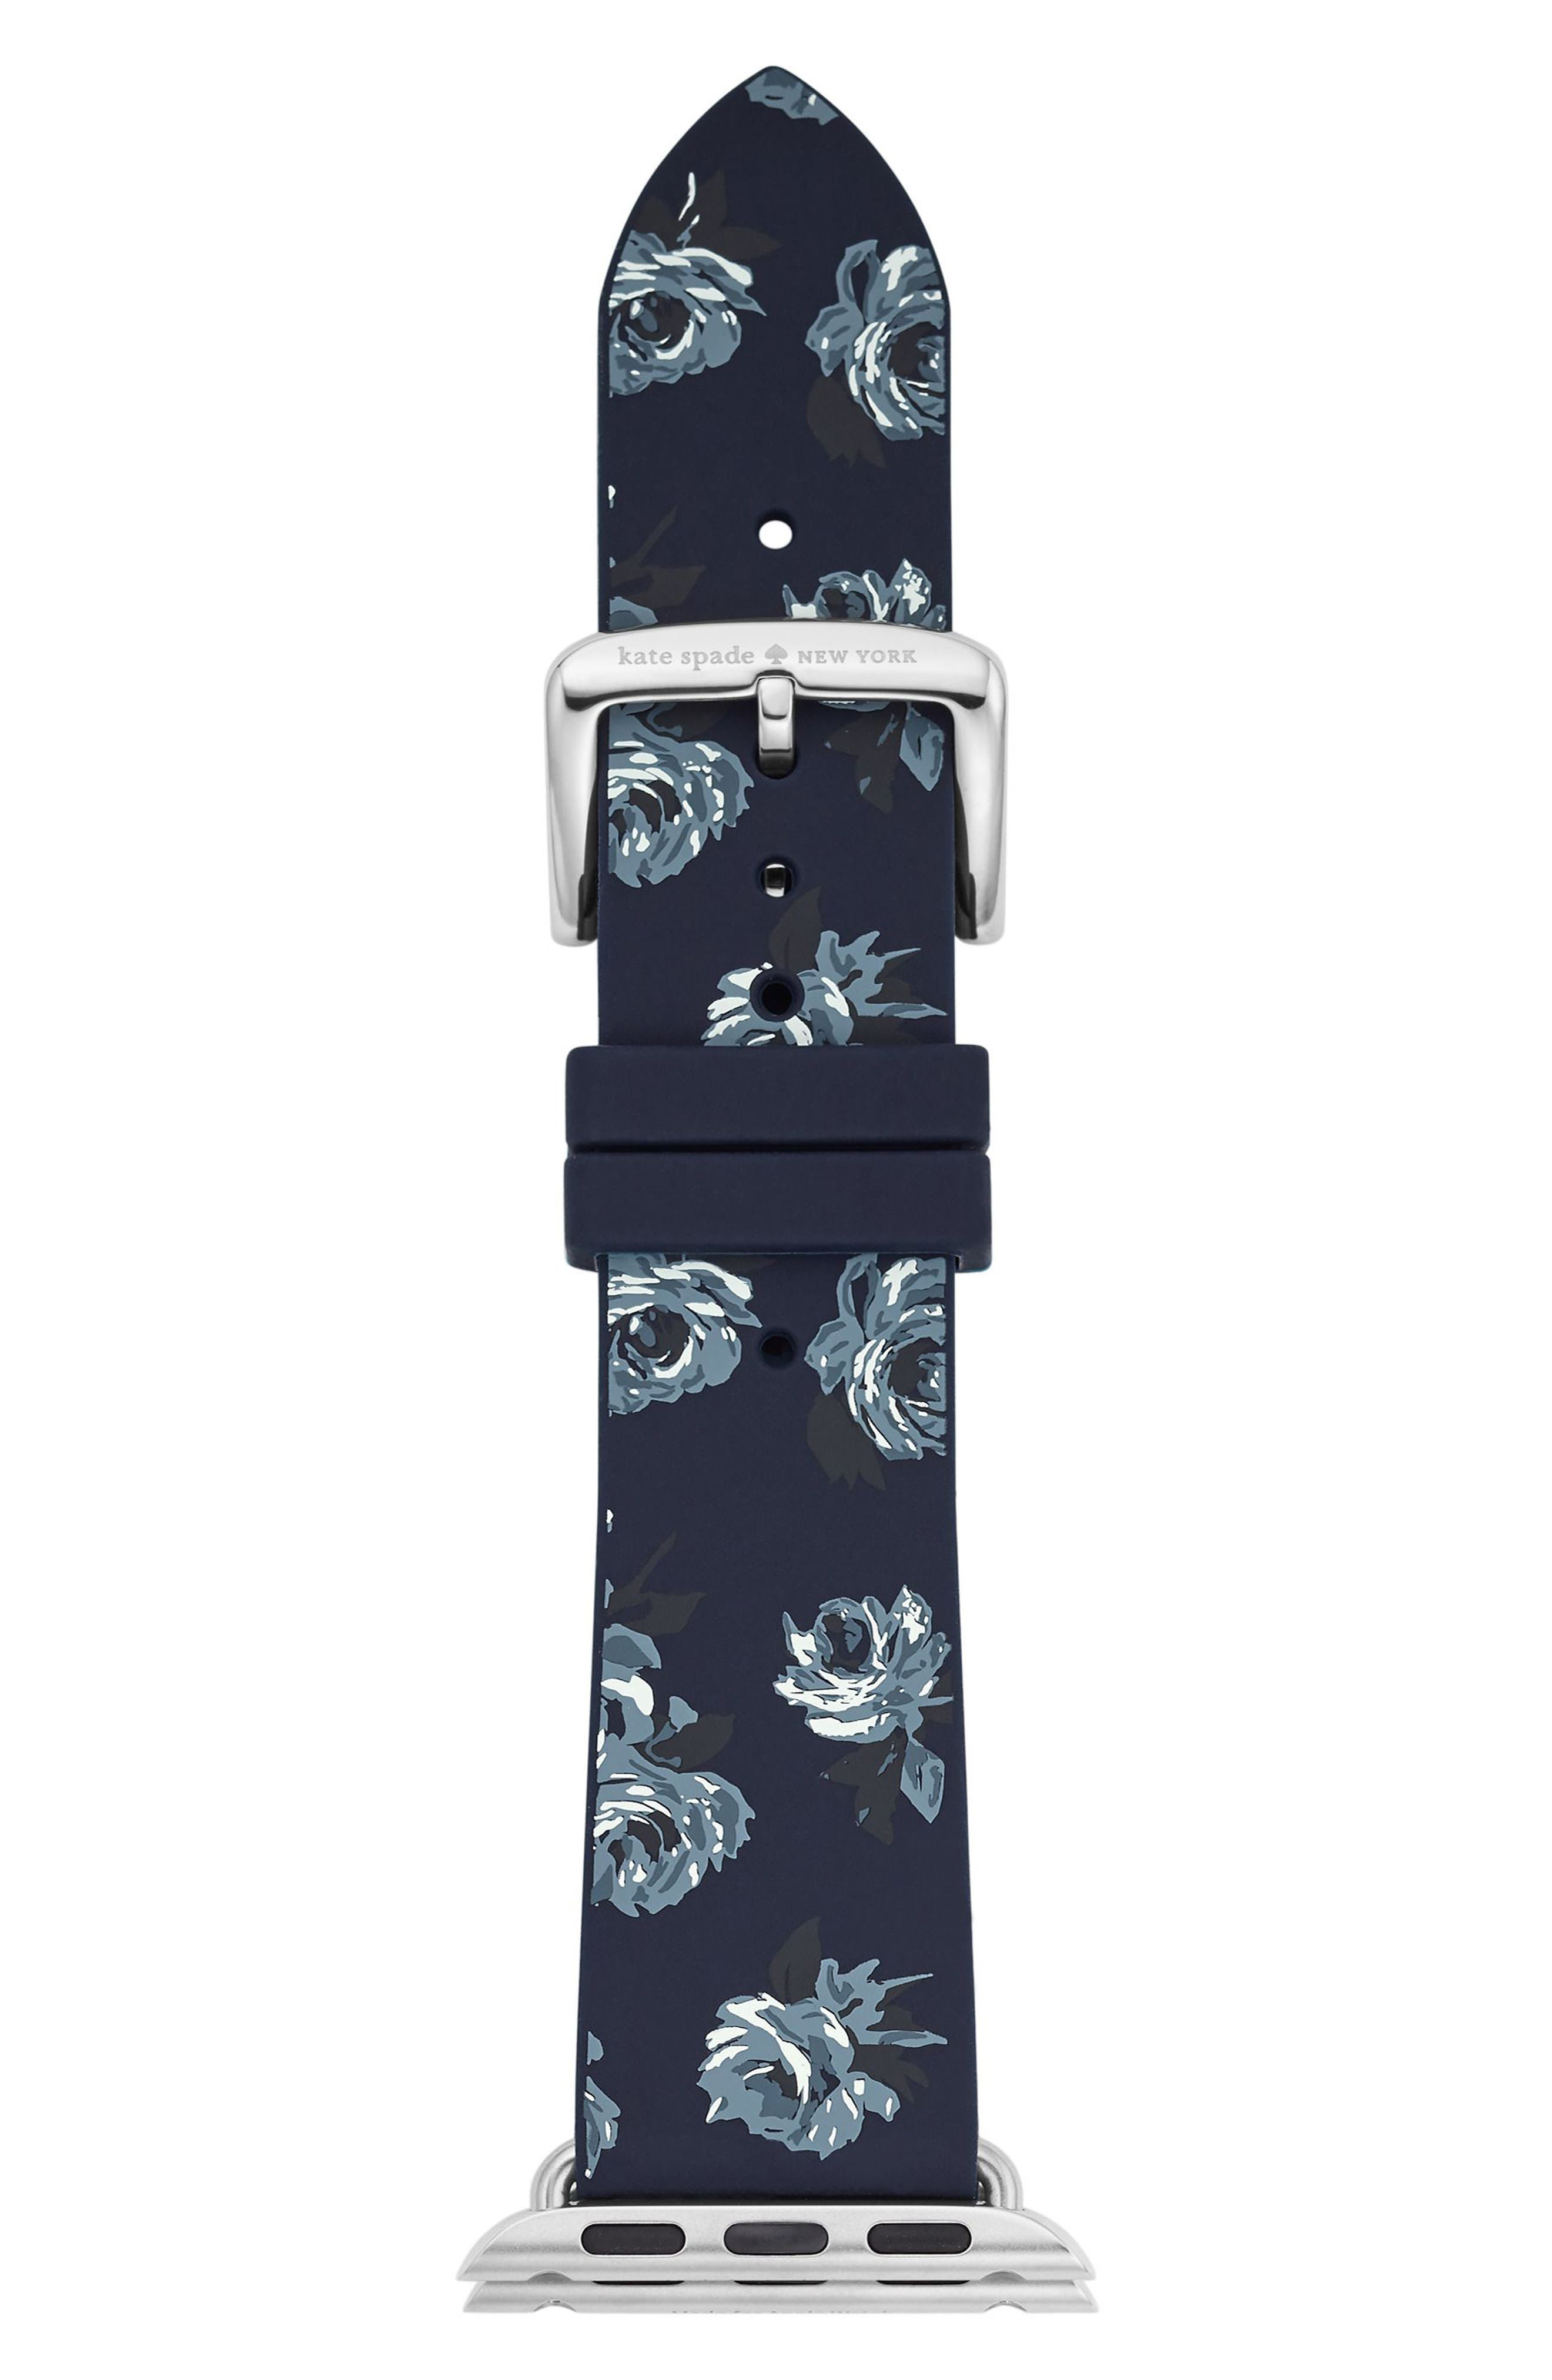 kate spade new york Apple® watch silicone strap, 25mm